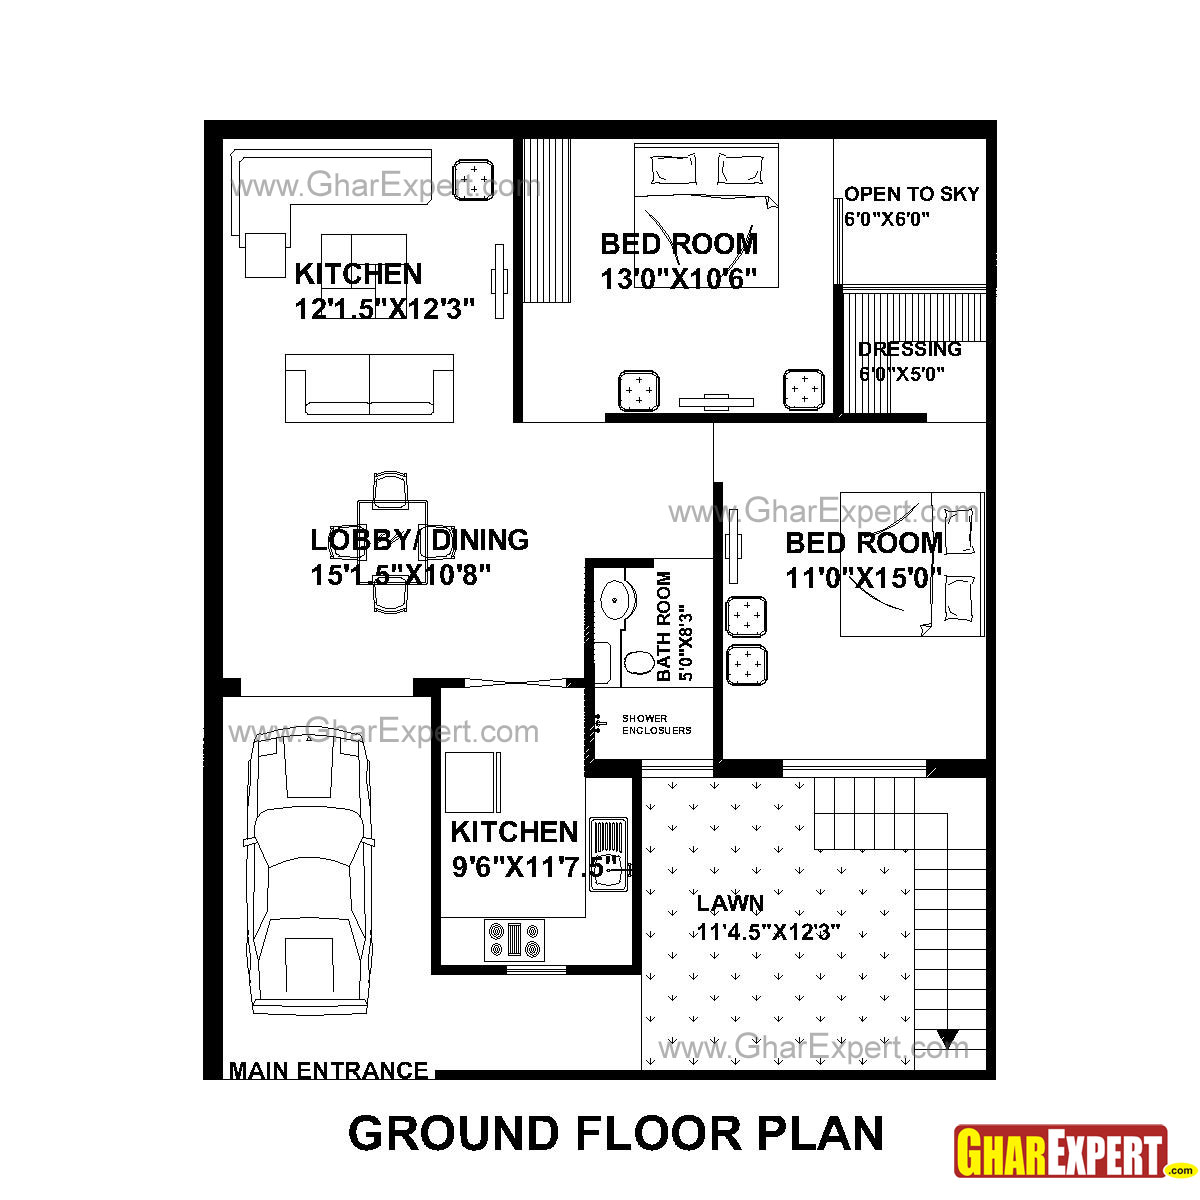 House Plan For 33 Feet By 40 Feet Plot Plot Size 147: House Plan For 33 Feet By 40 Feet Plot (Plot Size 147